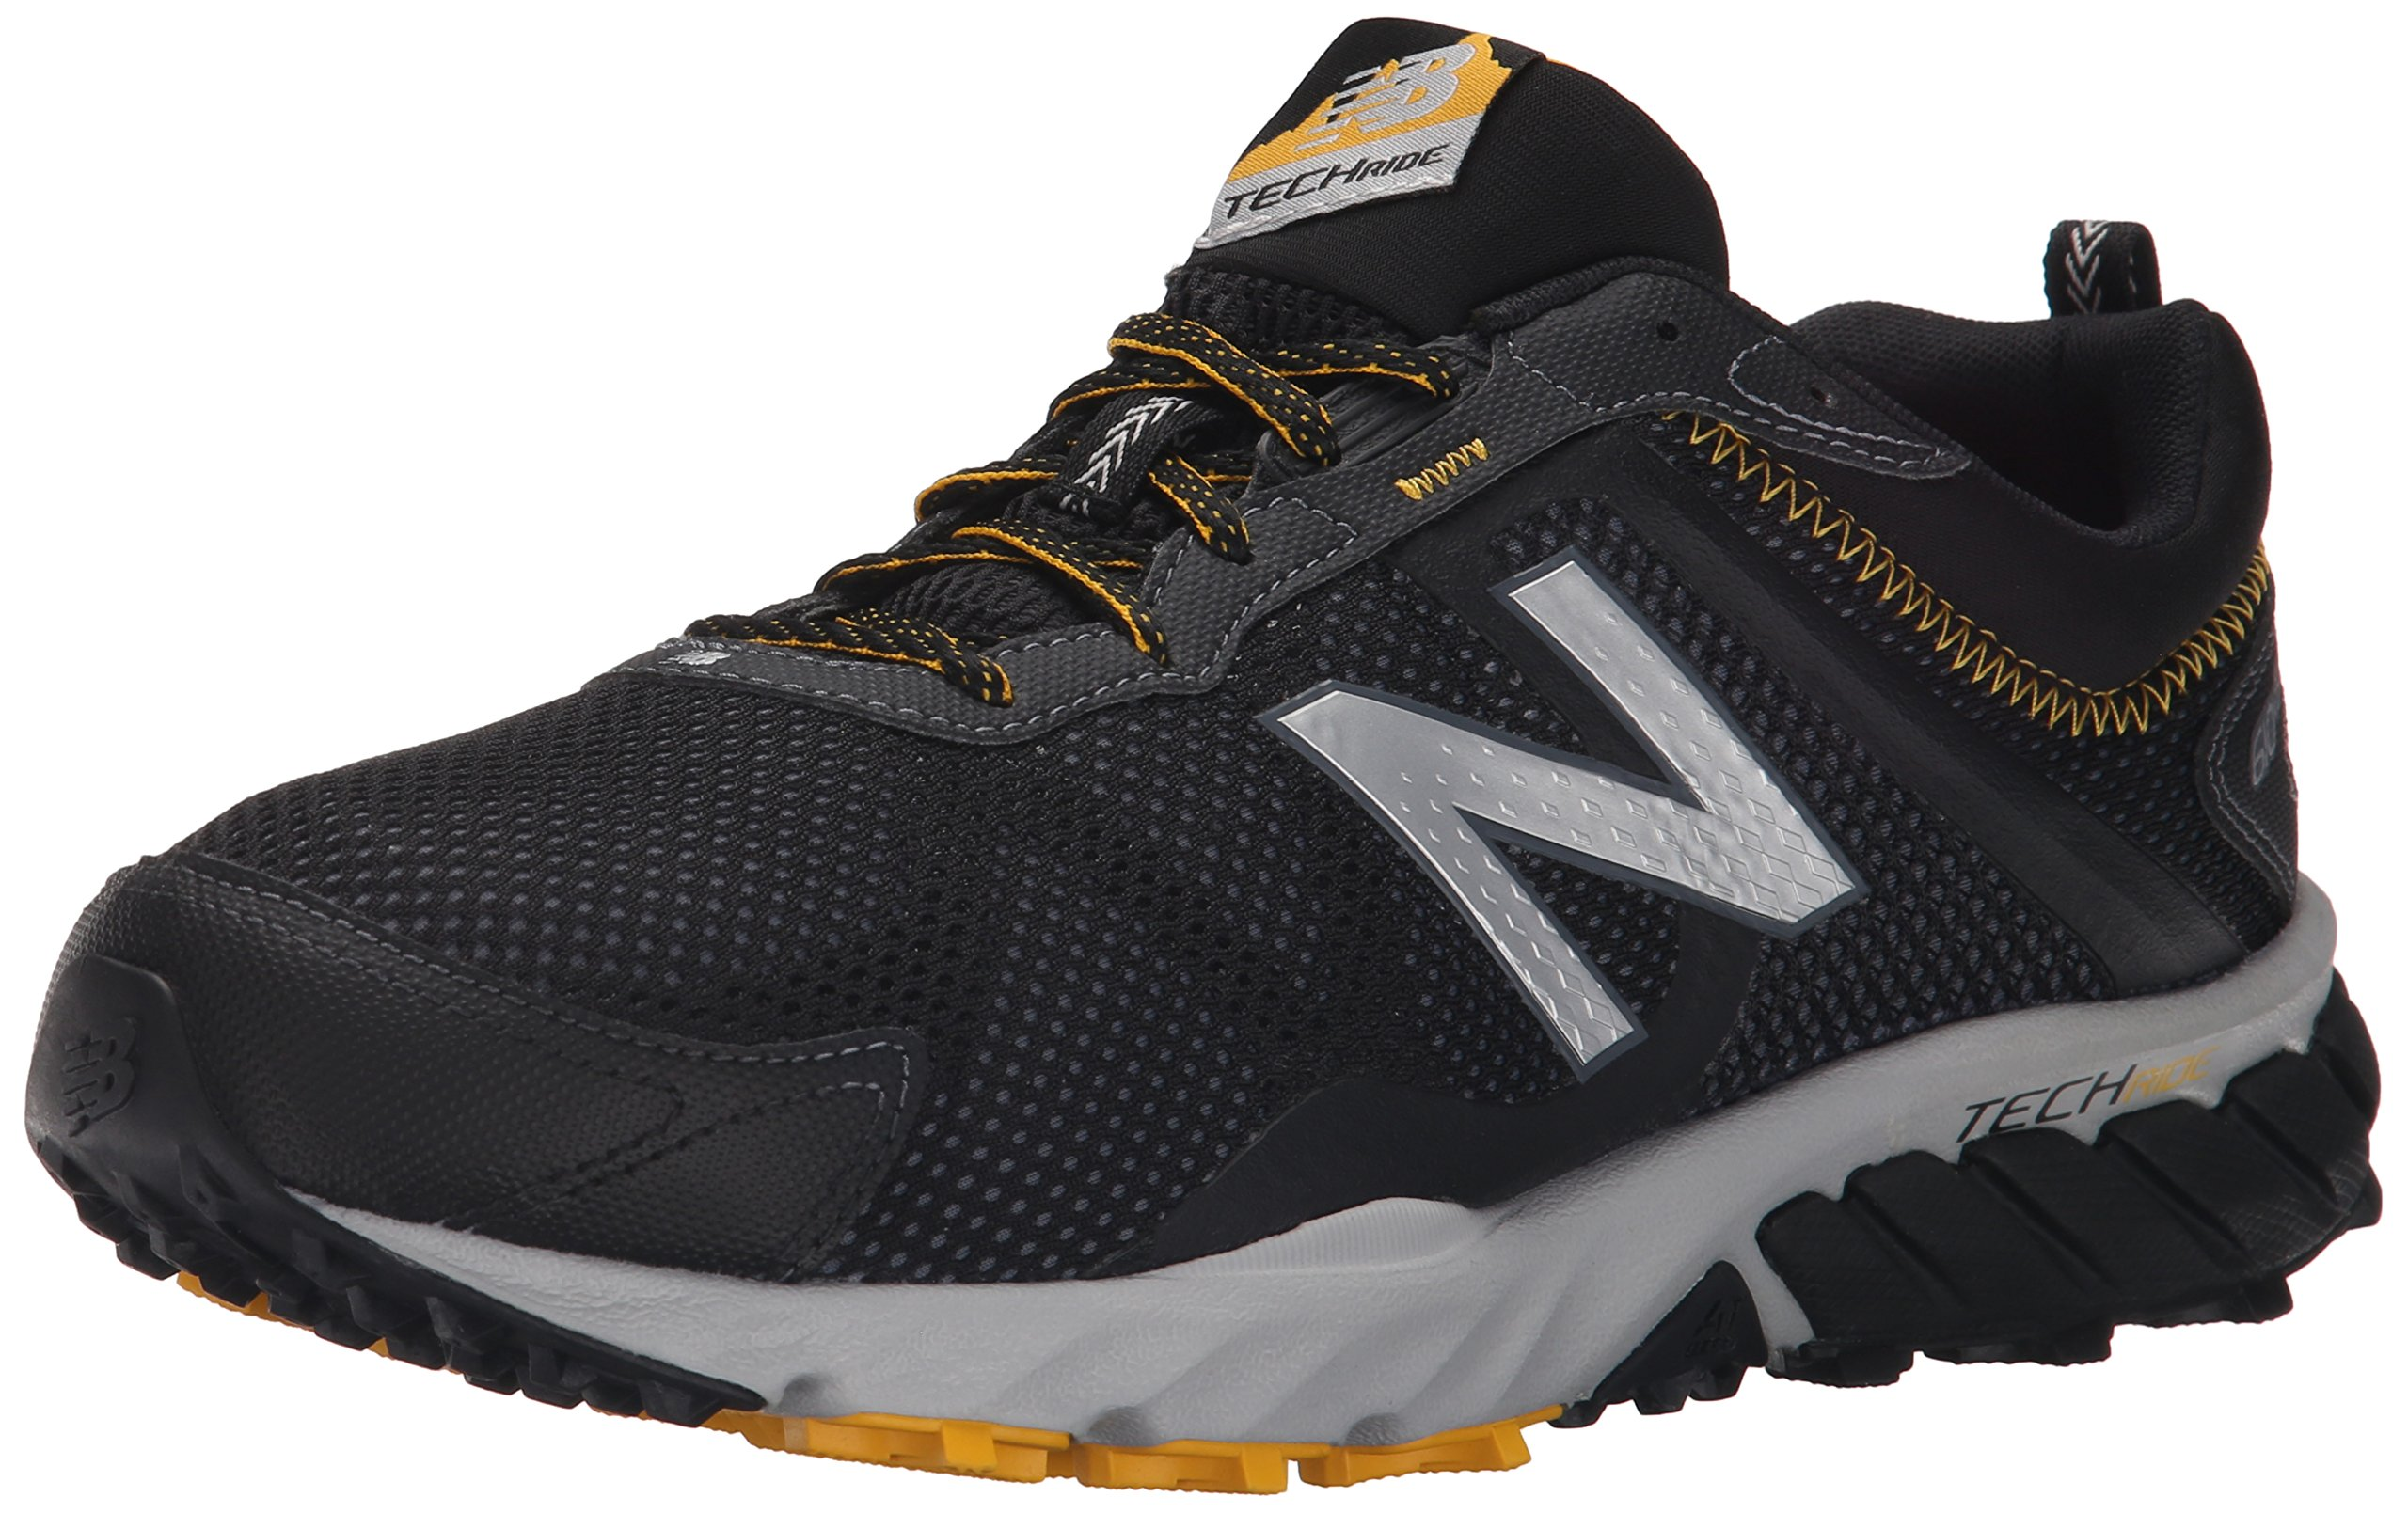 New Balance Men's MT610V5 Trail Shoe, Black/Gold Rush, 10 D US